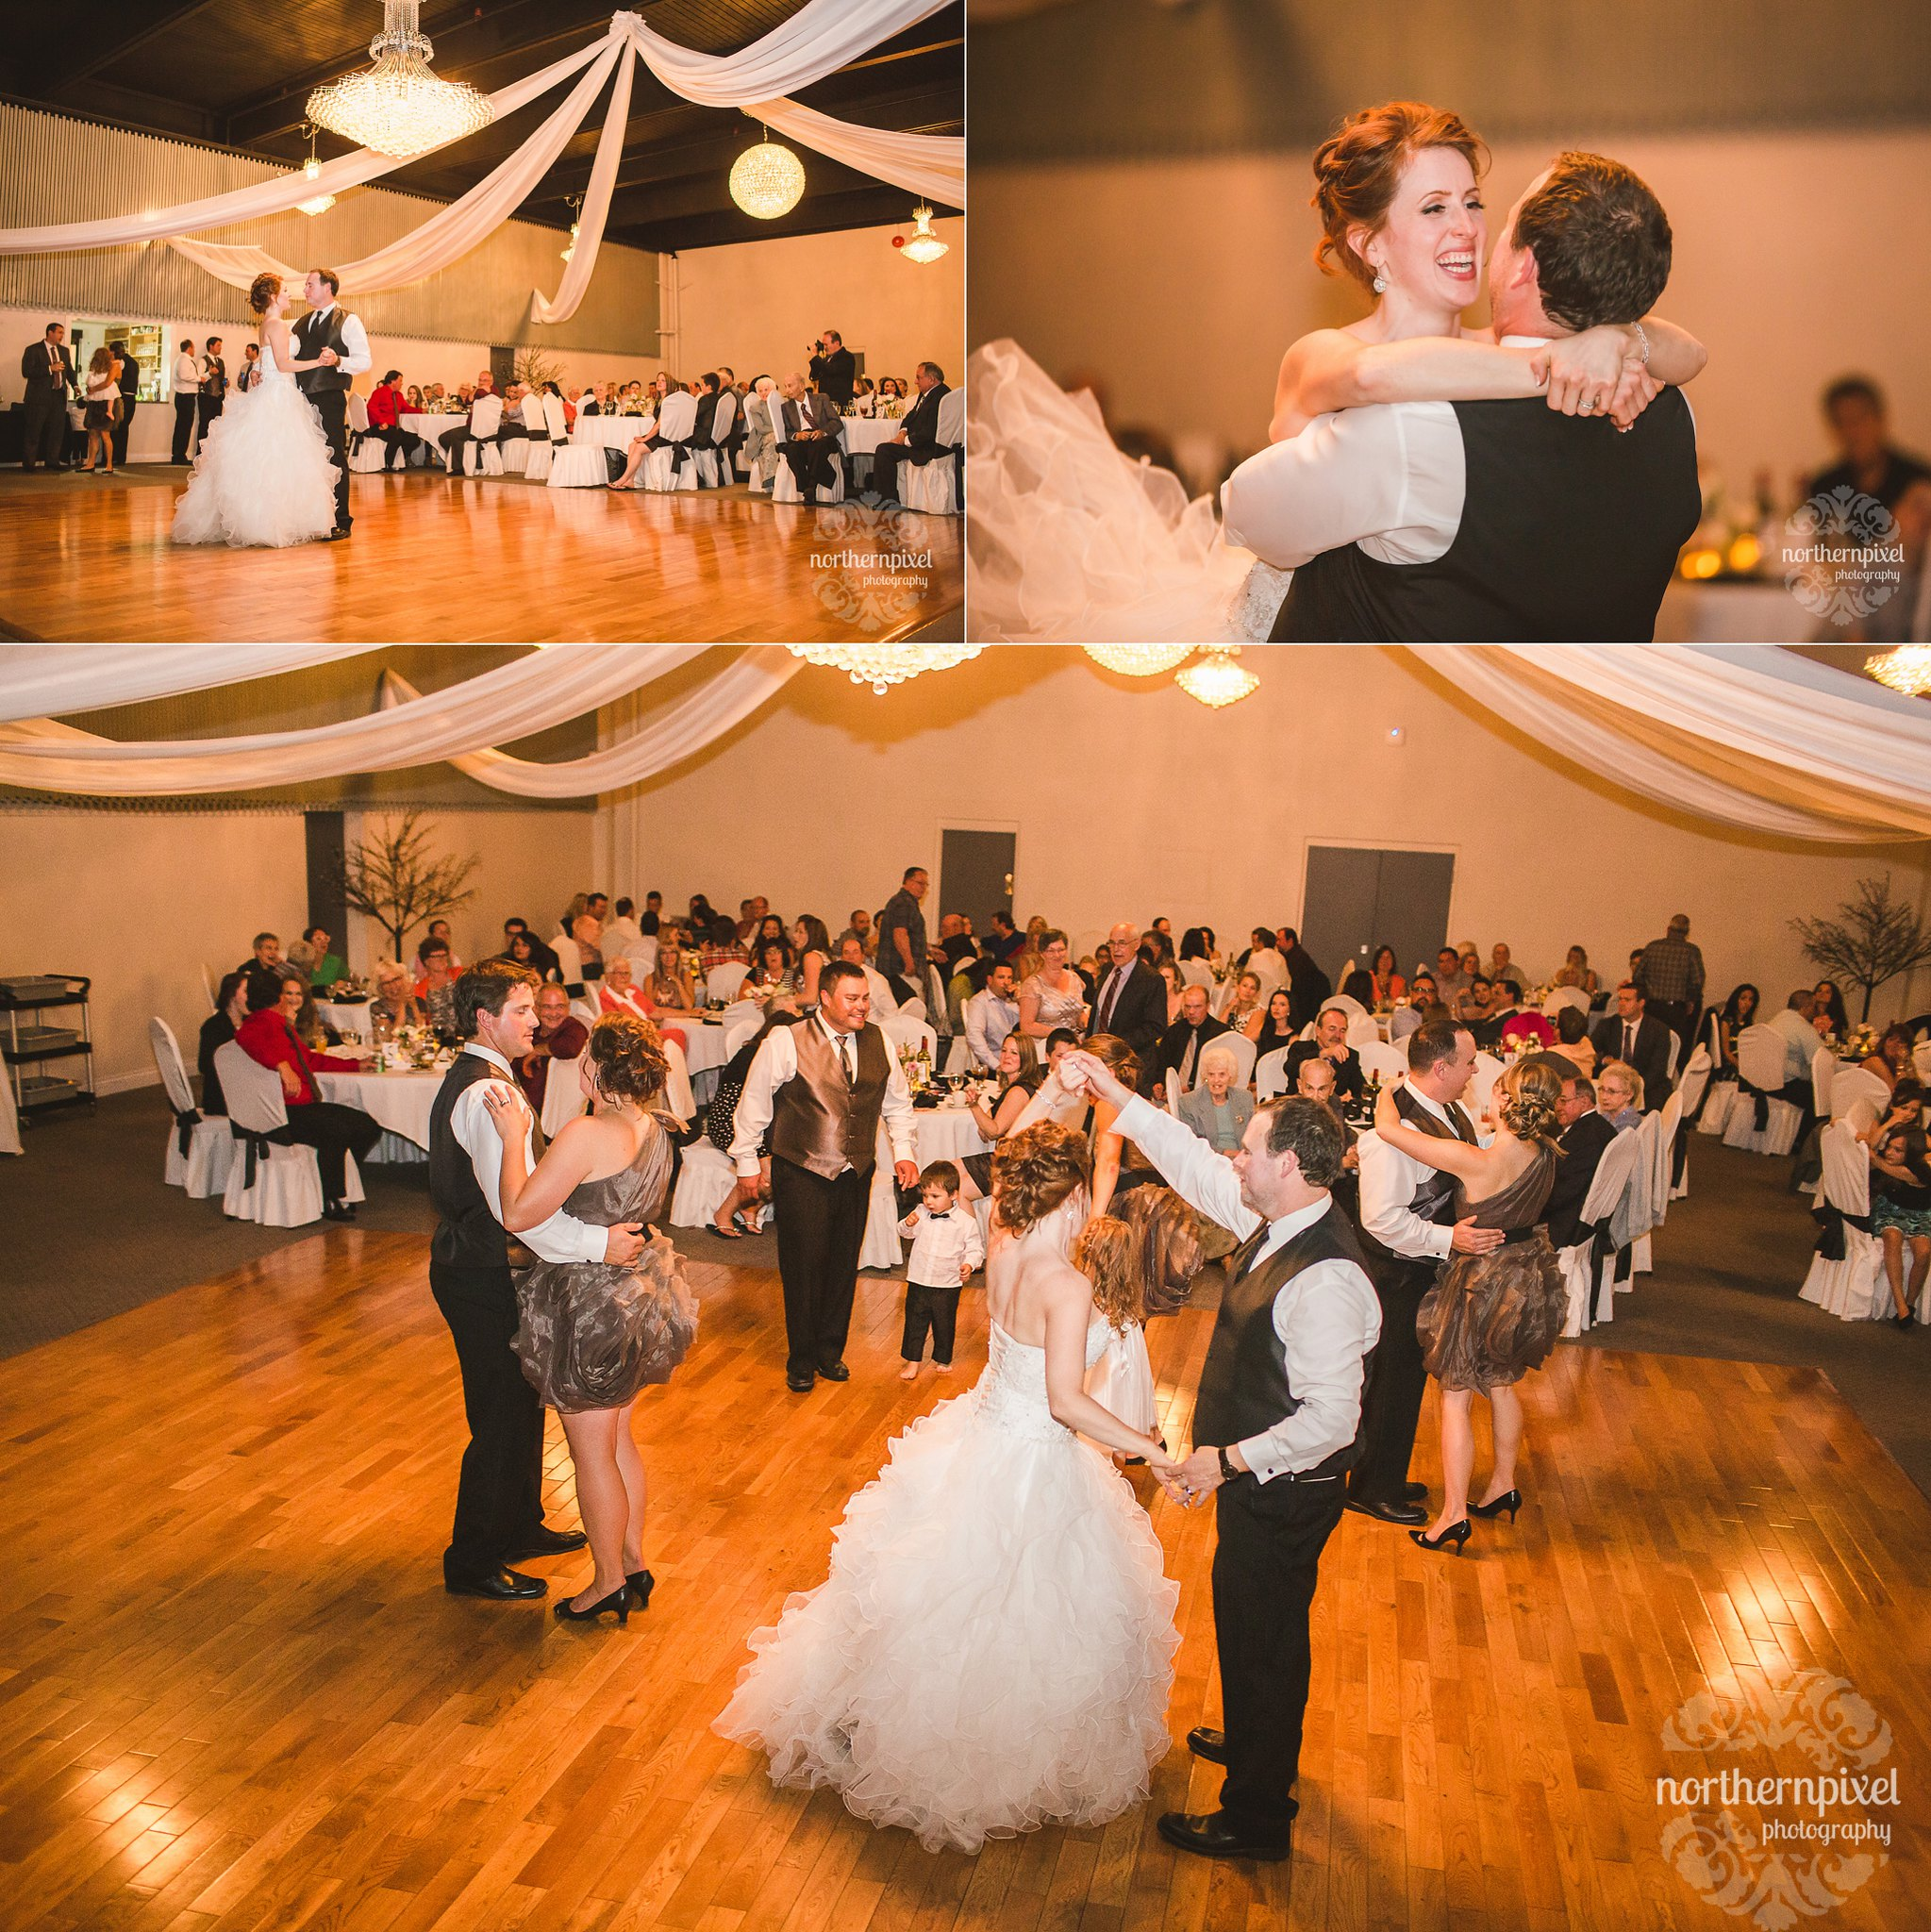 Hart Crown Banquet Hall Wedding Reception Venue - Prince George BC Photographers